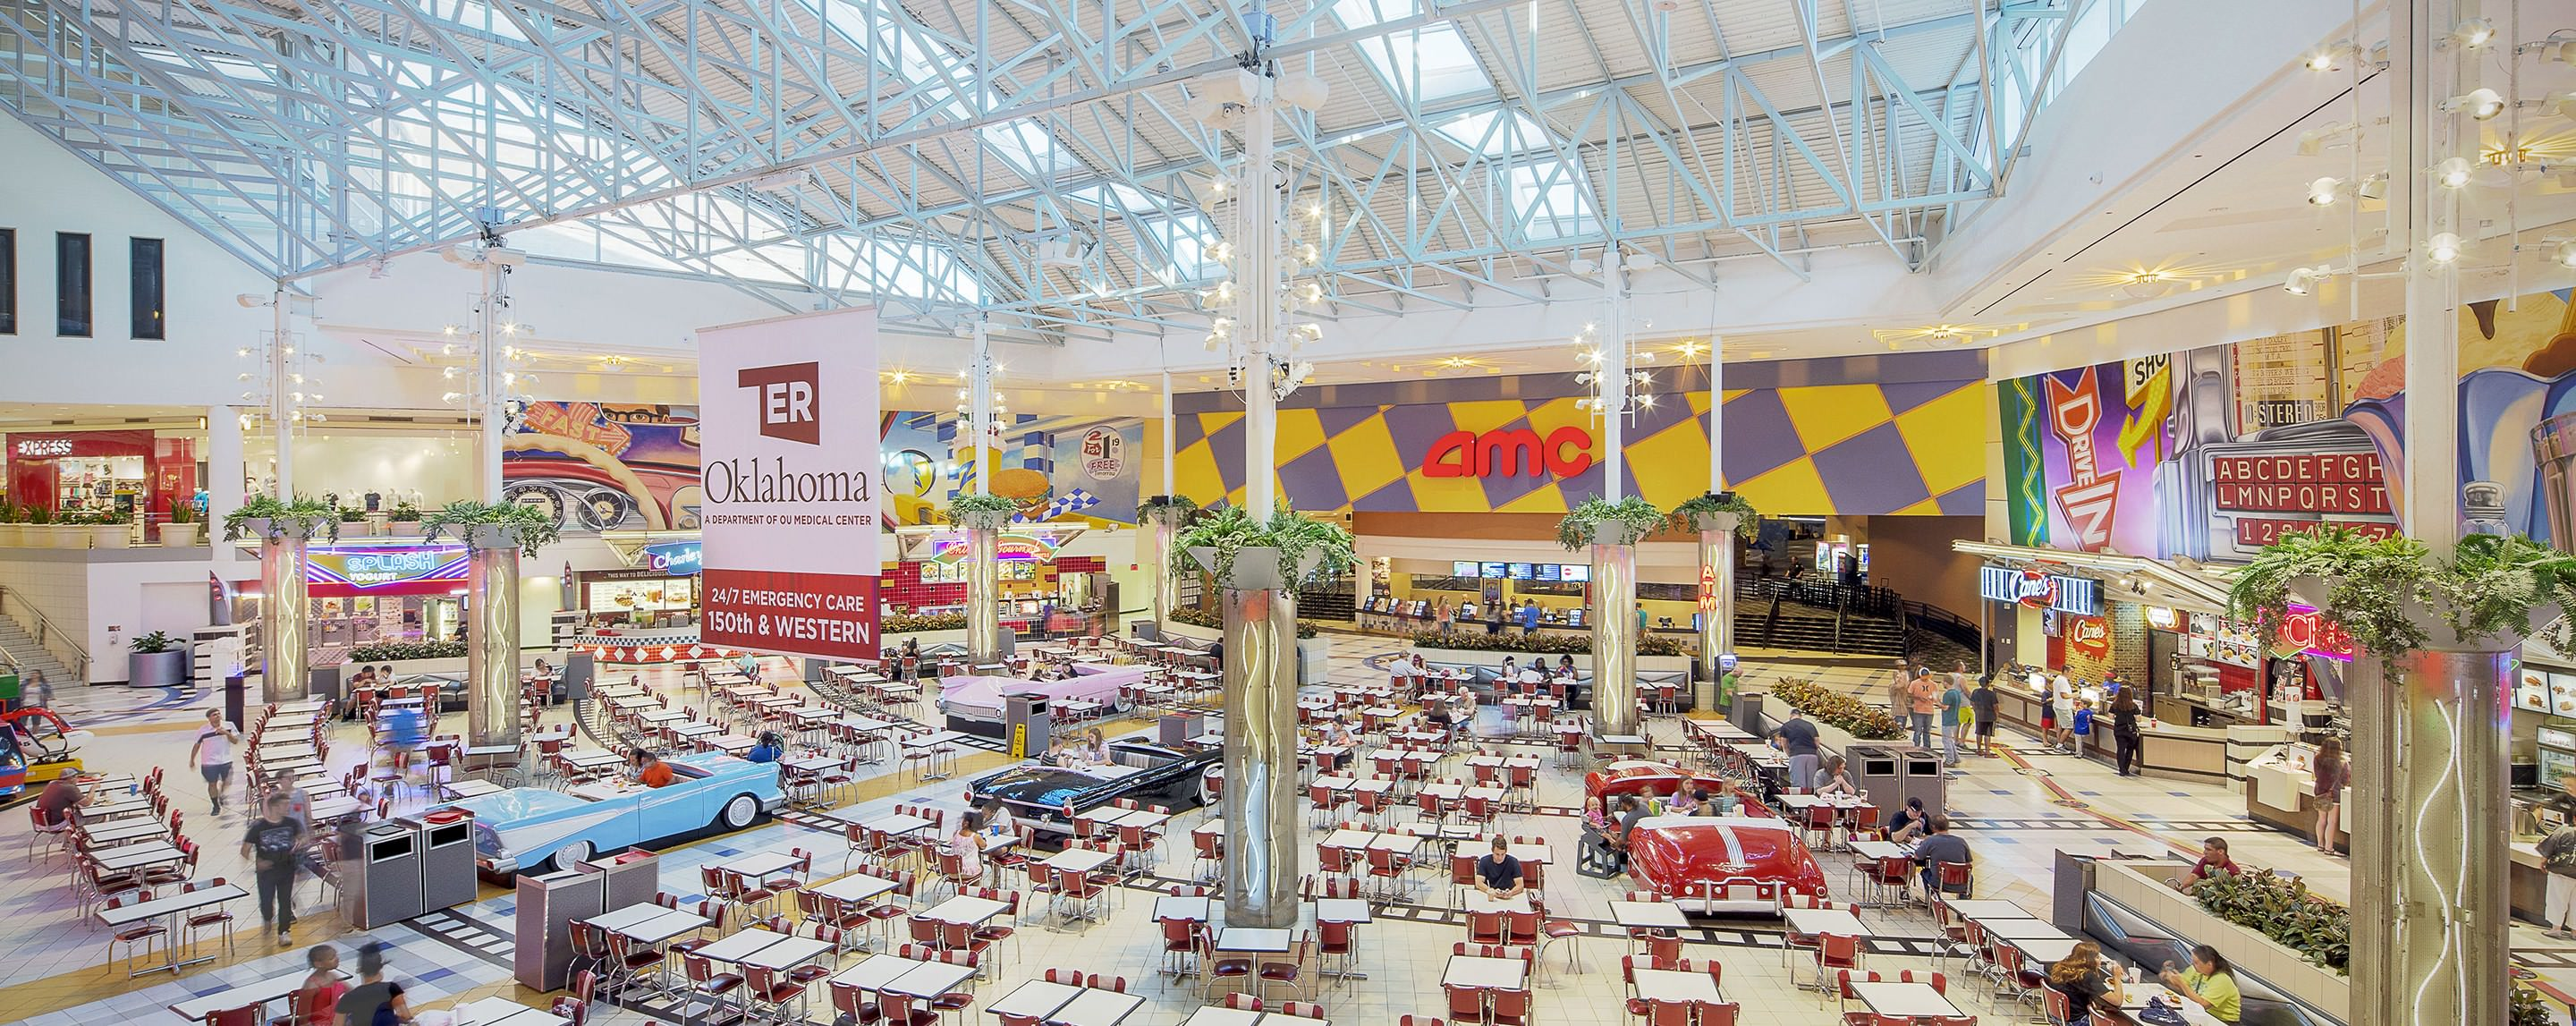 Visitors eat in the food court at Quail Springs Mall, surrounded by restaurants and the entrance to AMC Theatres.